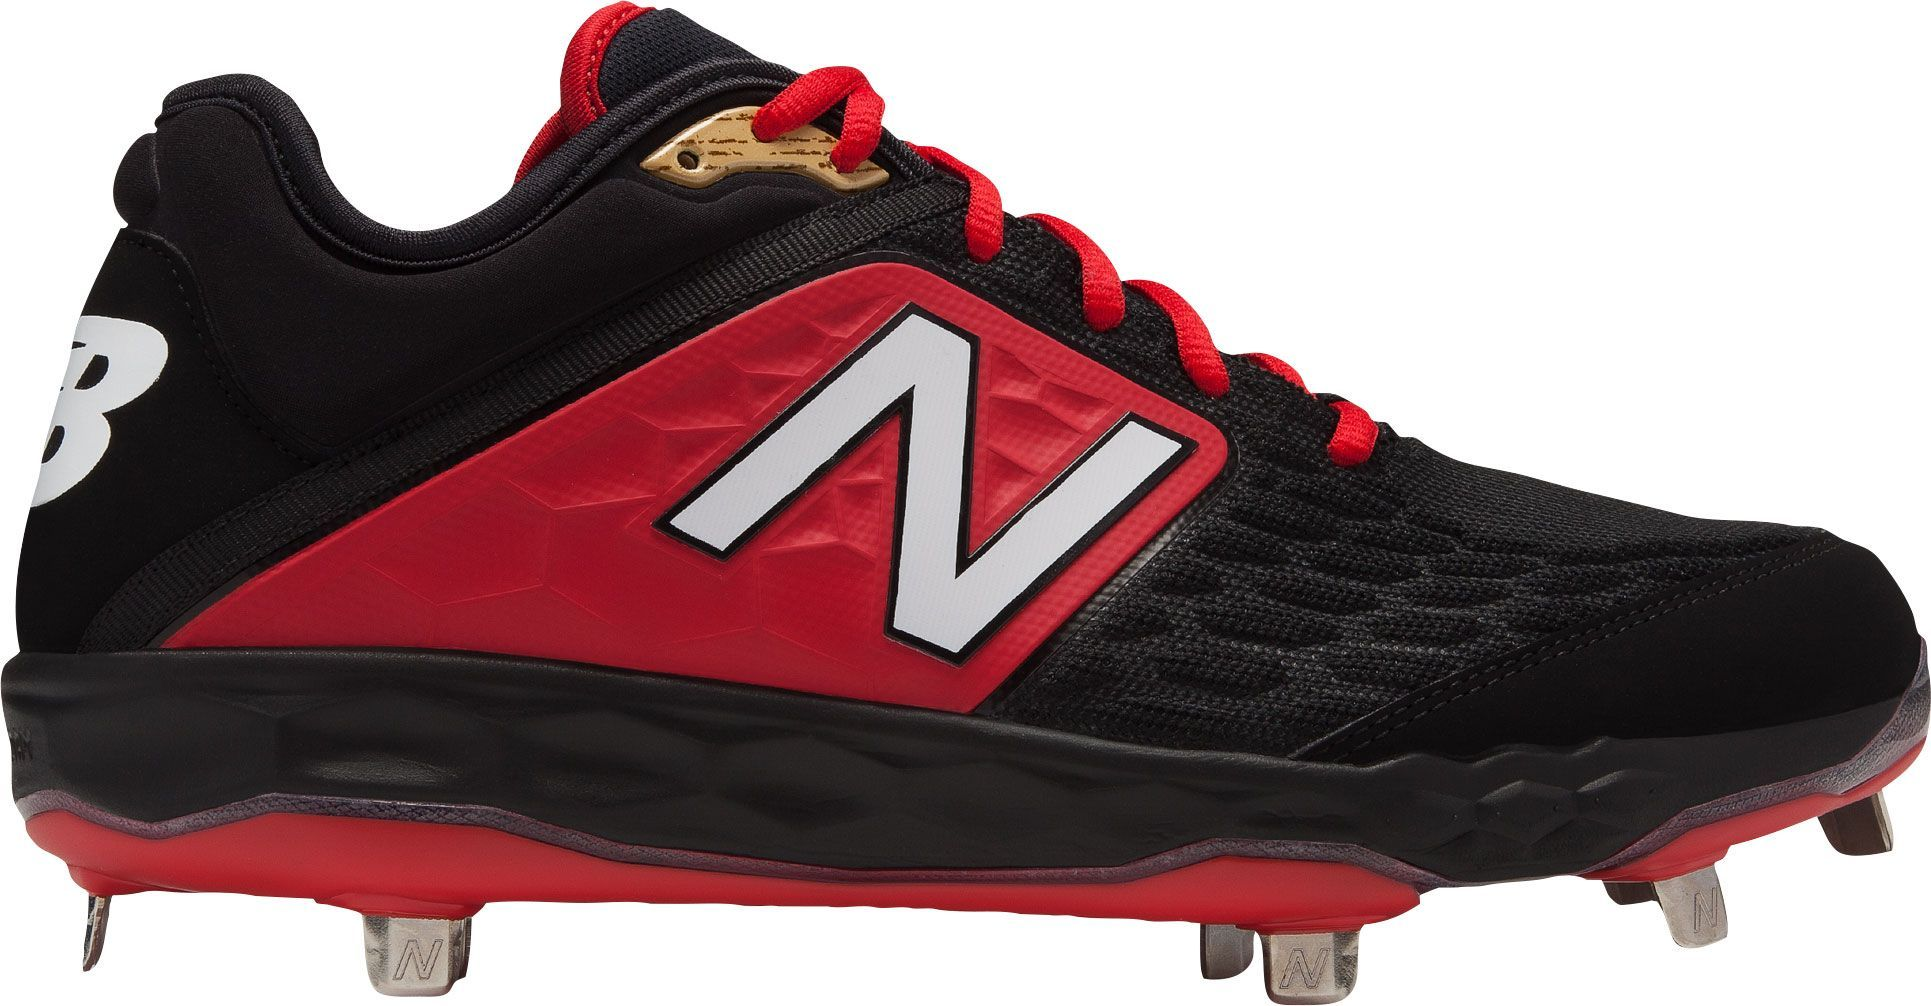 quality design 310e7 27991 New Balance Men s 3000 V4 Metal Baseball Cleats, Size  14.0, Black